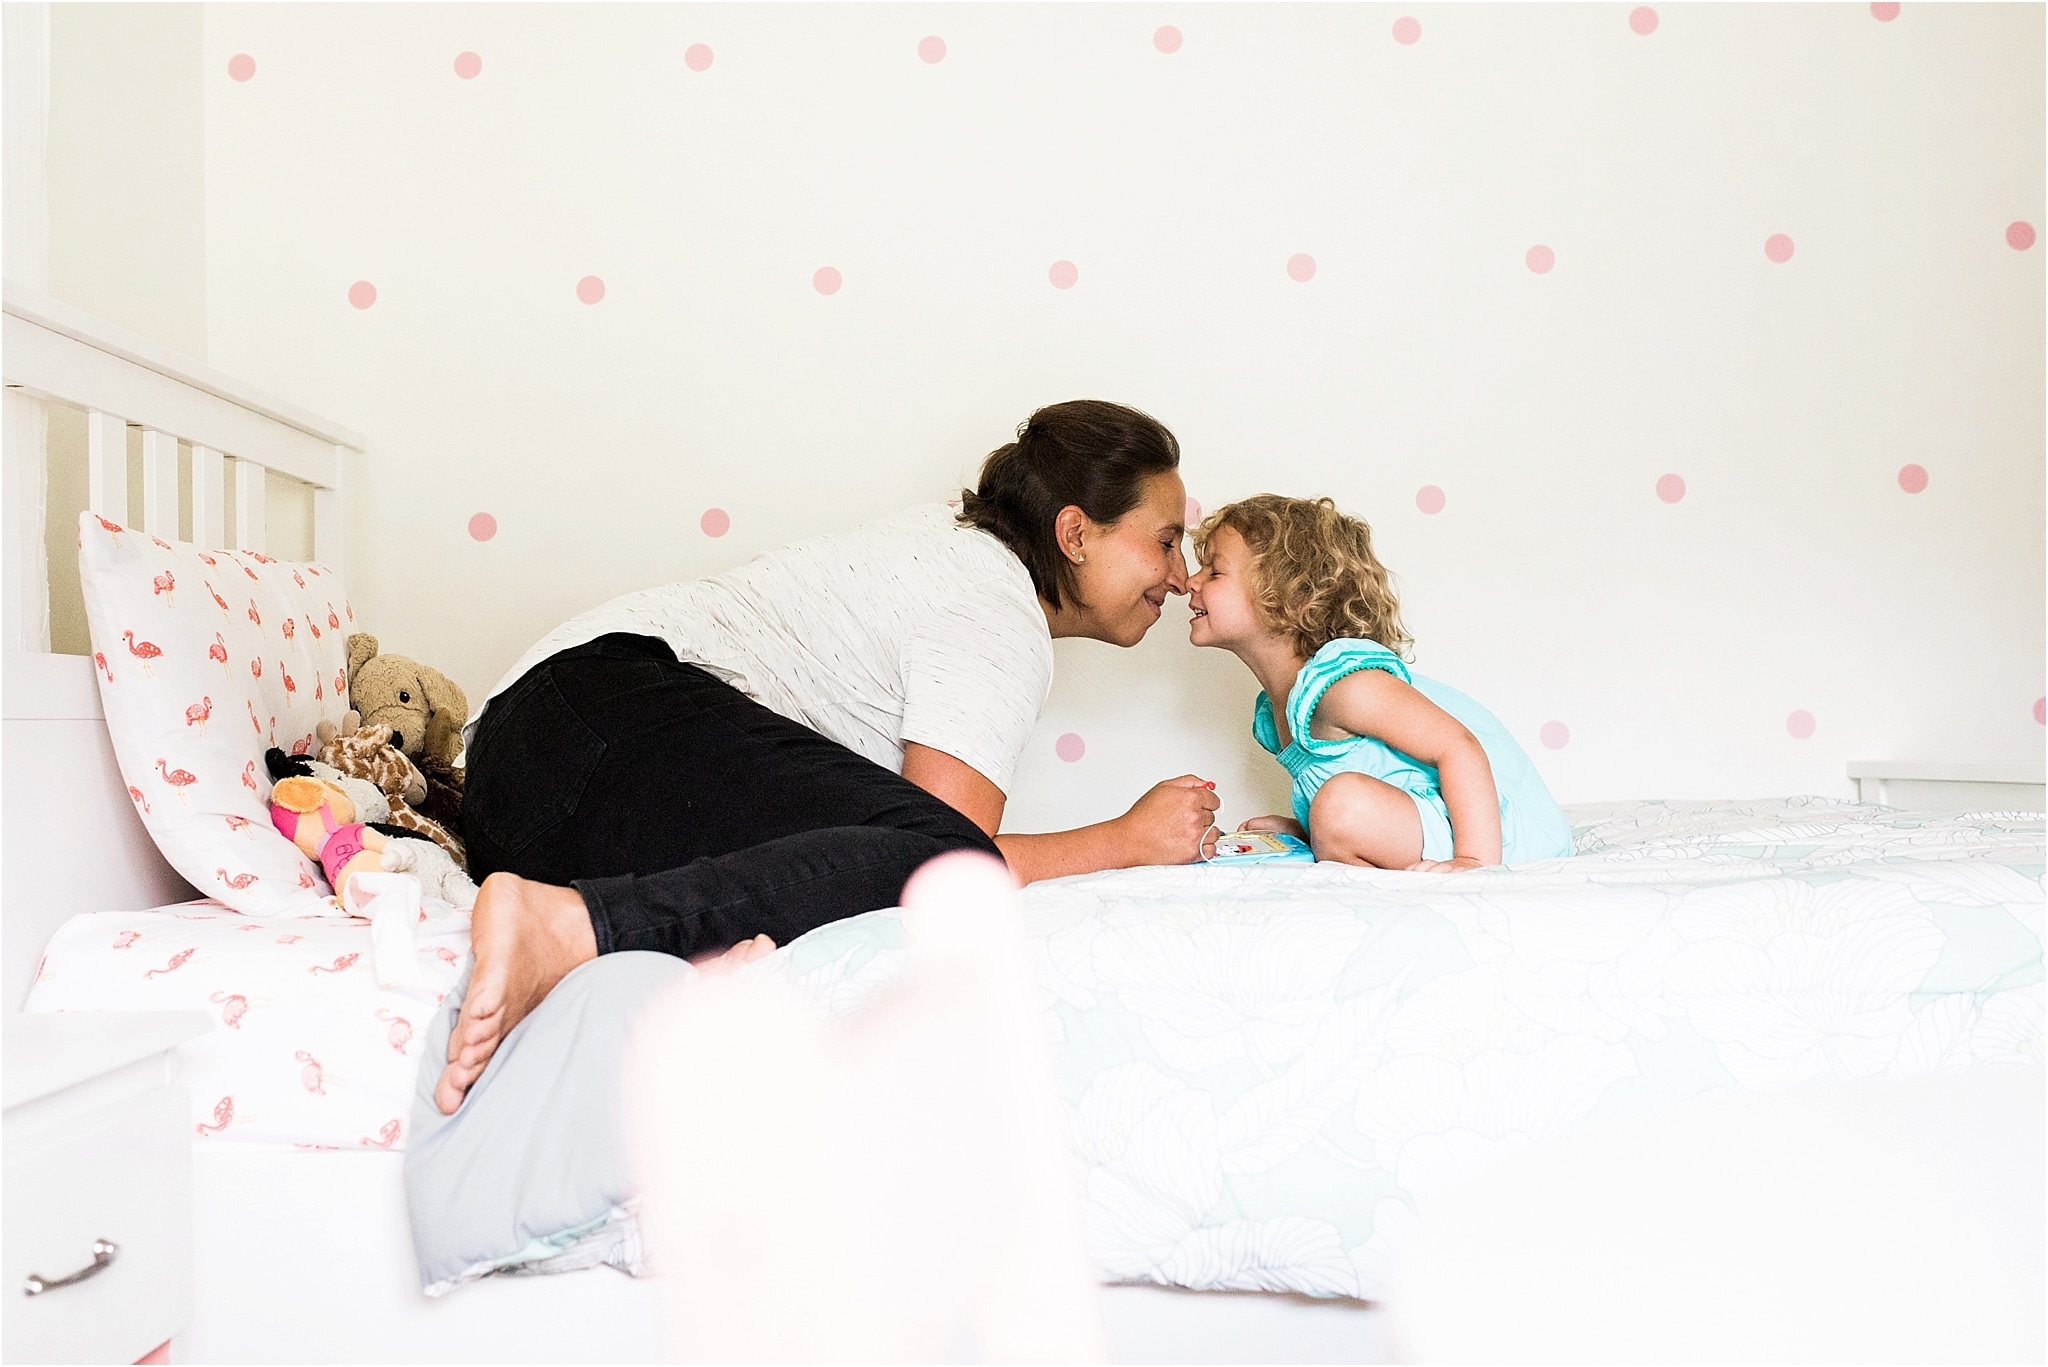 mother and daughter playing in bedroom